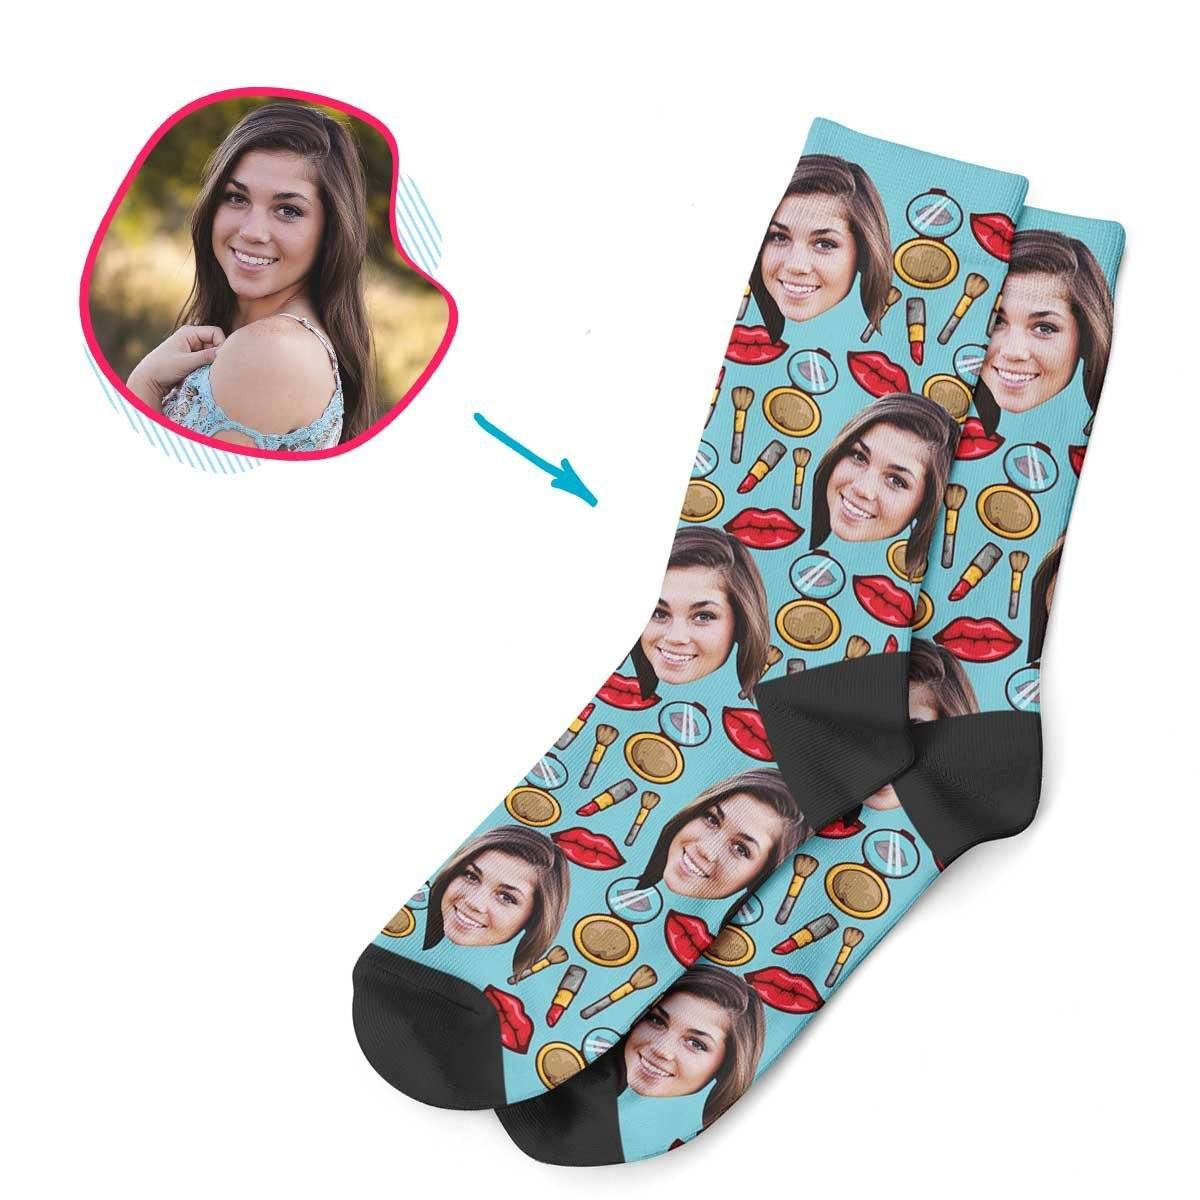 Blue Makeup personalized socks with photo of face printed on them